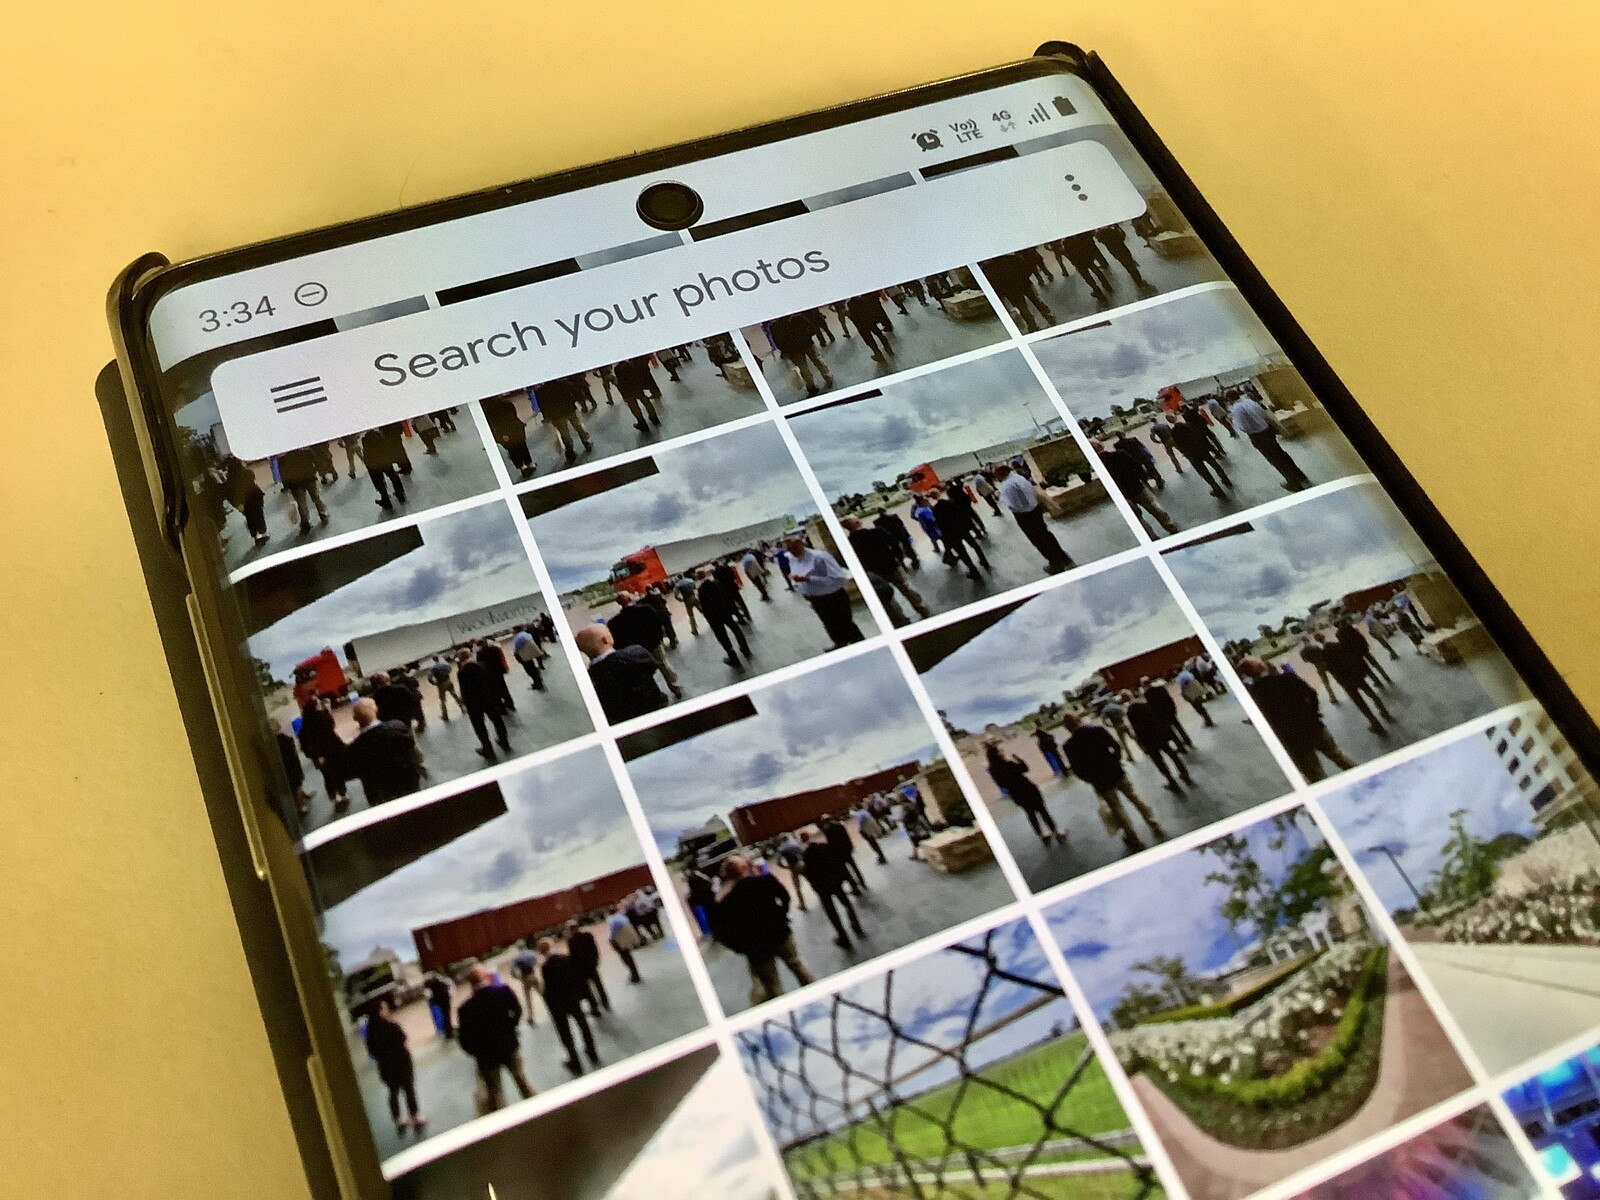 Storing iOS photos in Google Photos is free, but only for now